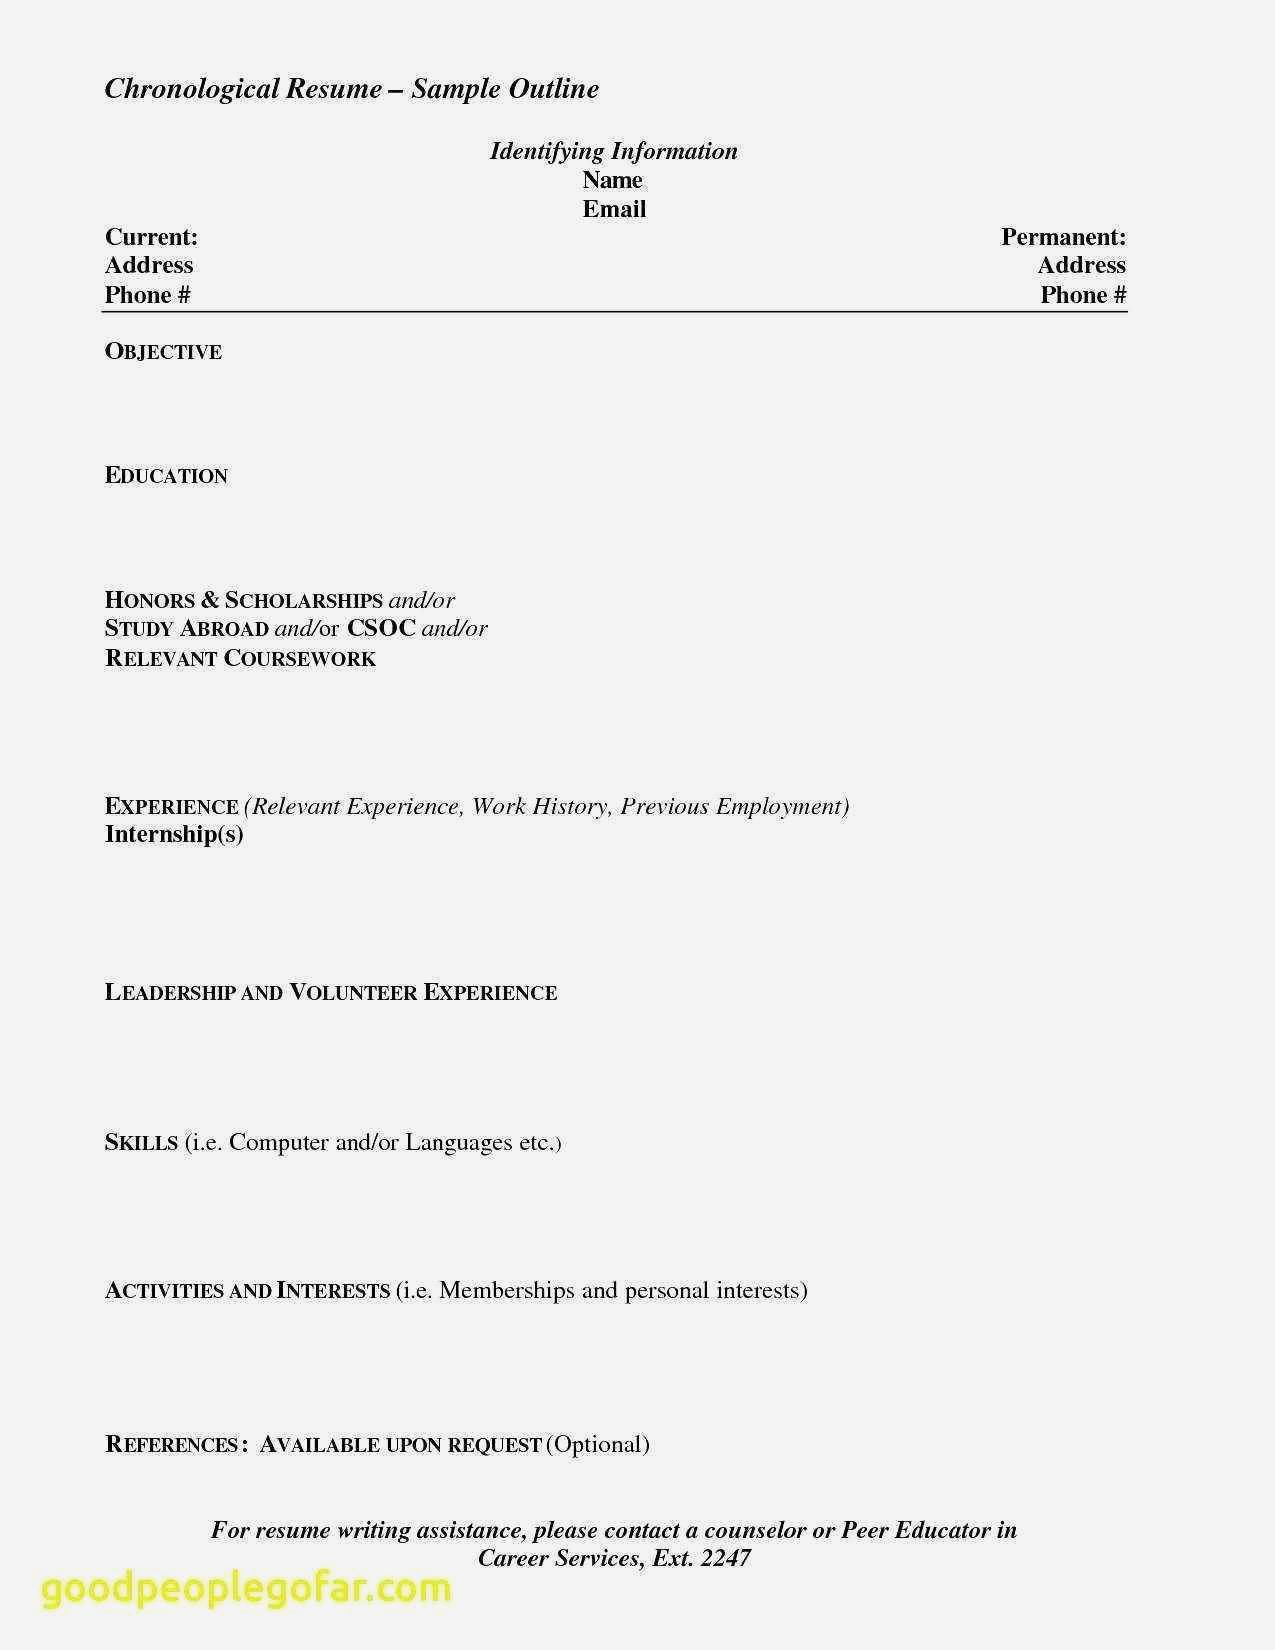 Resume Template Open Office Writer - 44 Luxury Resume Templates for Openoffice Awesome Resume Example